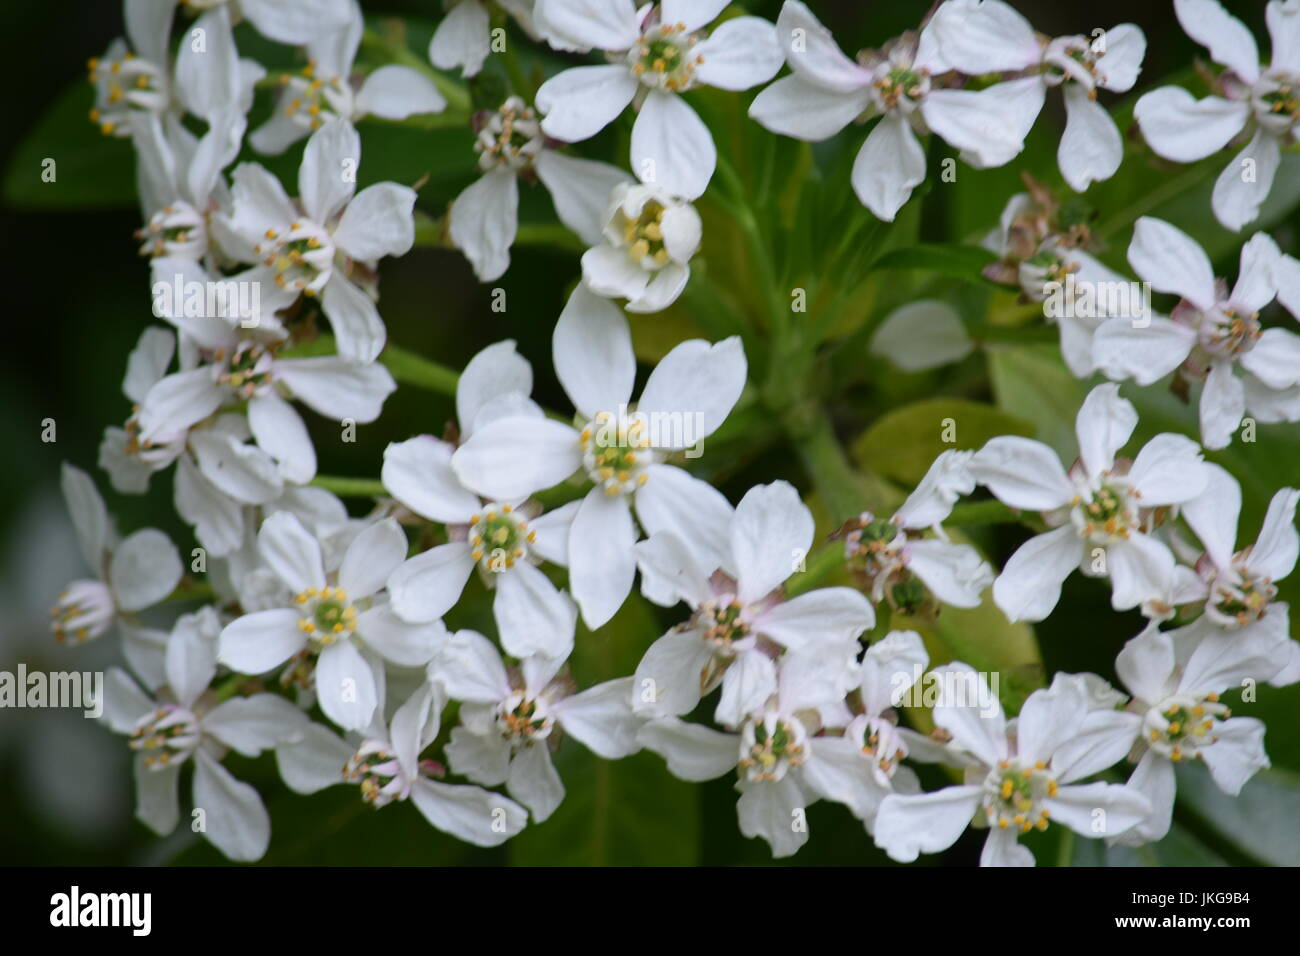 Comfortable white star flower bush contemporary images for wedding white flowered bush backgrounds stock photo 149720008 alamy mightylinksfo Images